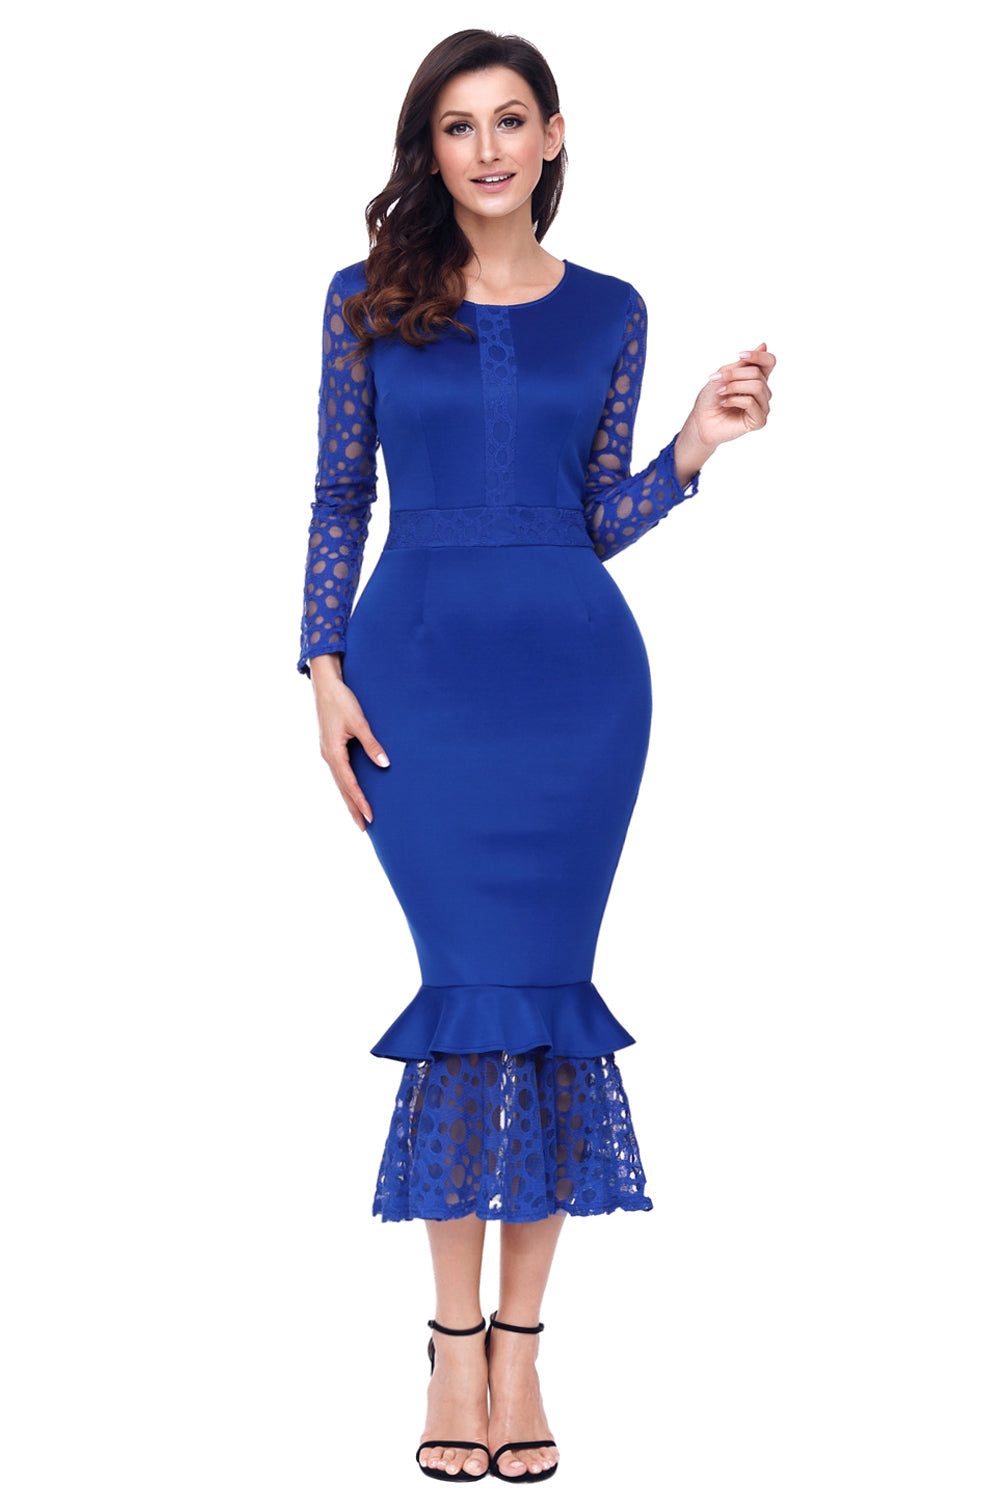 Sexy Navy Blue Hollow-out Long Sleeve Lace Ruffle Bodycon Midi Dress – SEXY  AFFORDABLE CLOTHING 78bccf907